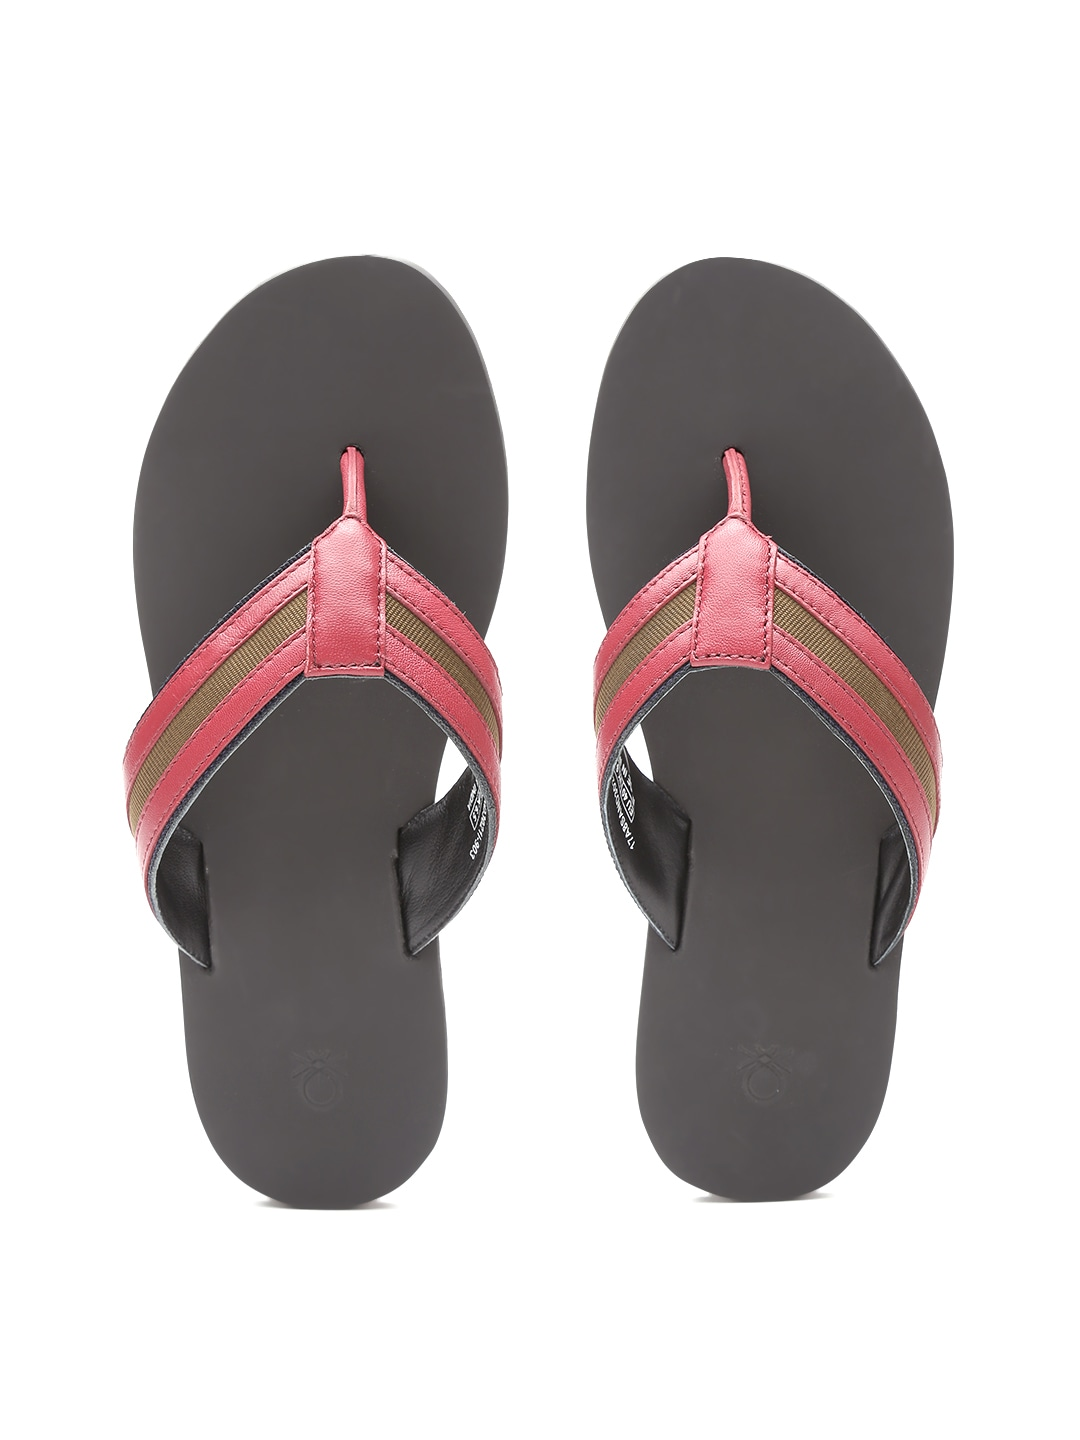 4b097989aede8 Slippers - Buy Slippers Online in India